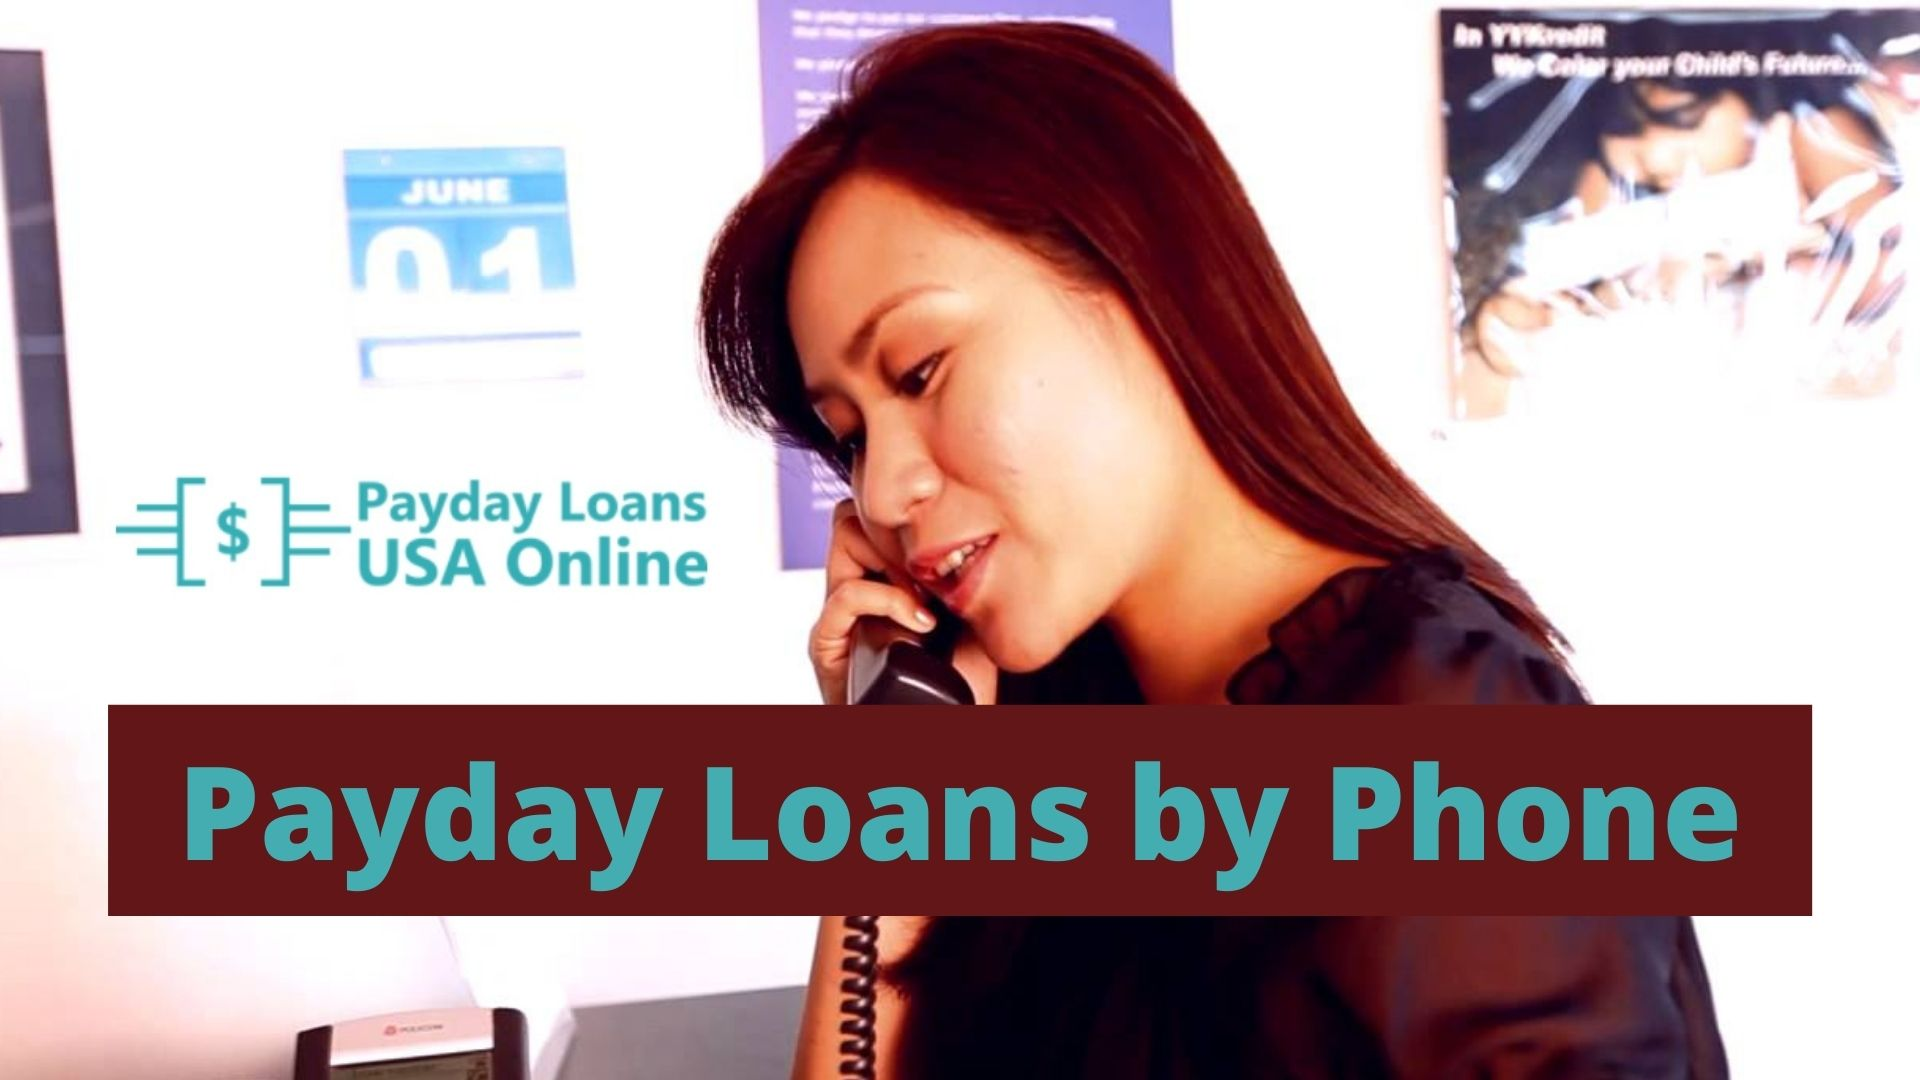 Payday Loans by phone